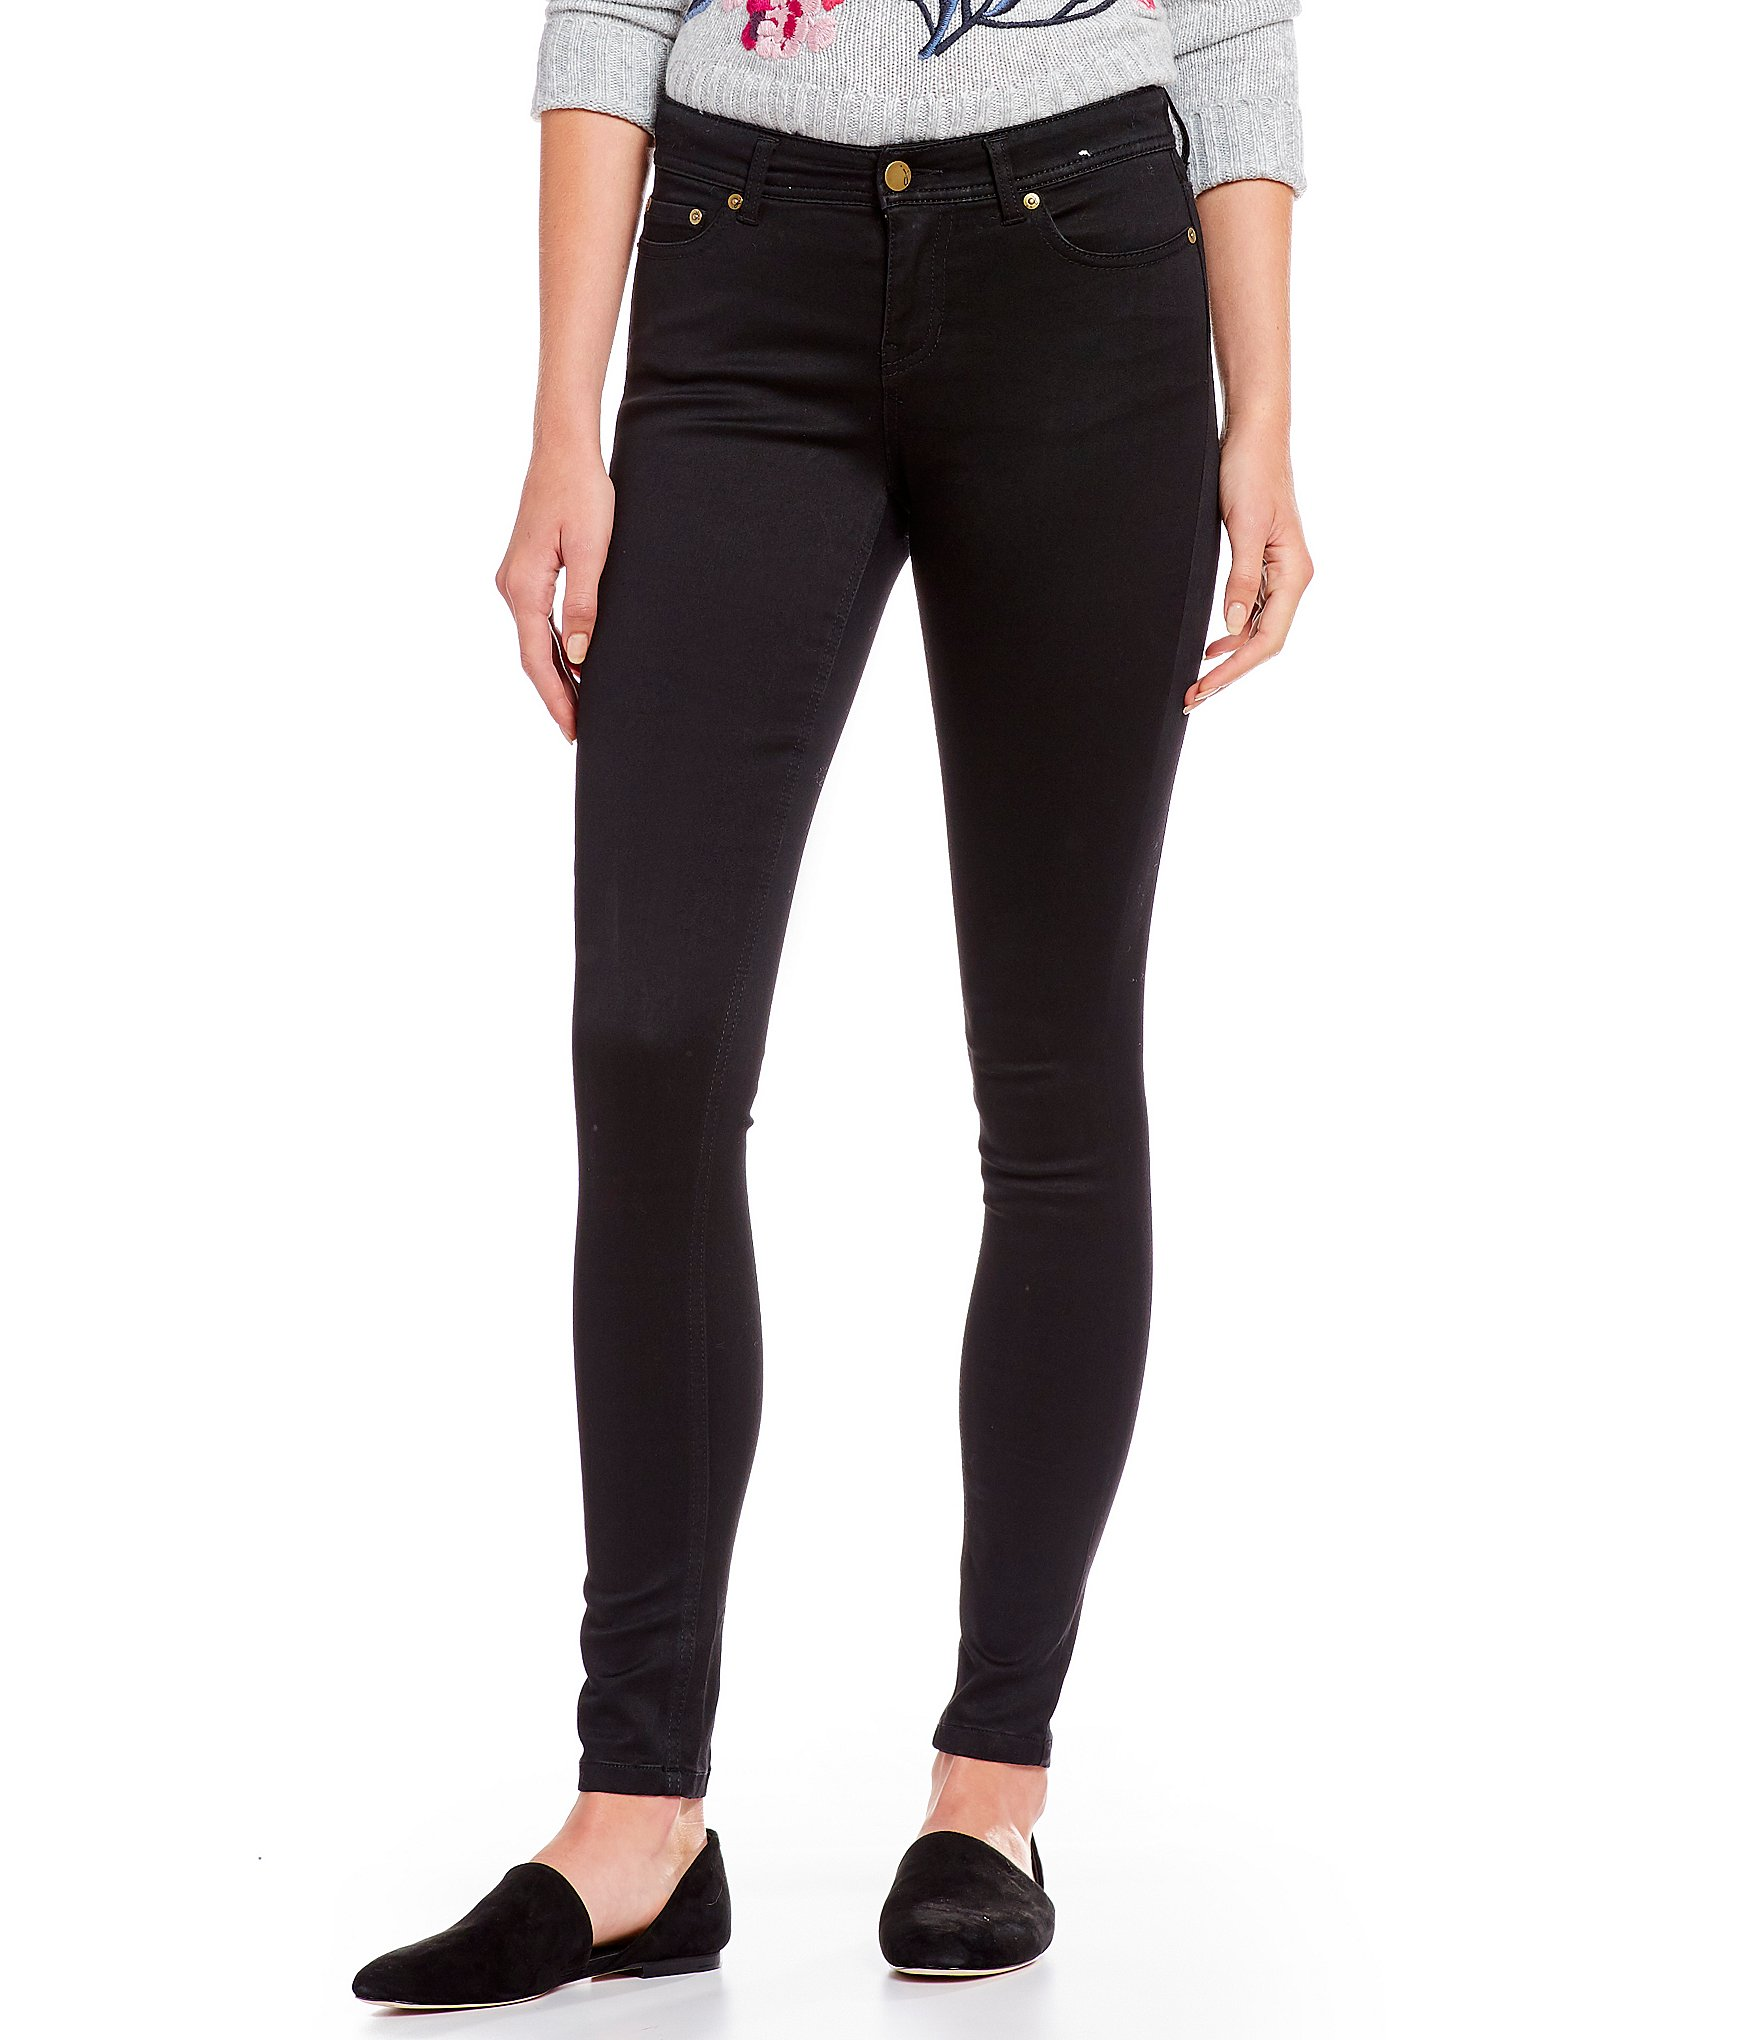 111cac91110f1 Joules Monroe Skinny Jeans | Dillard's